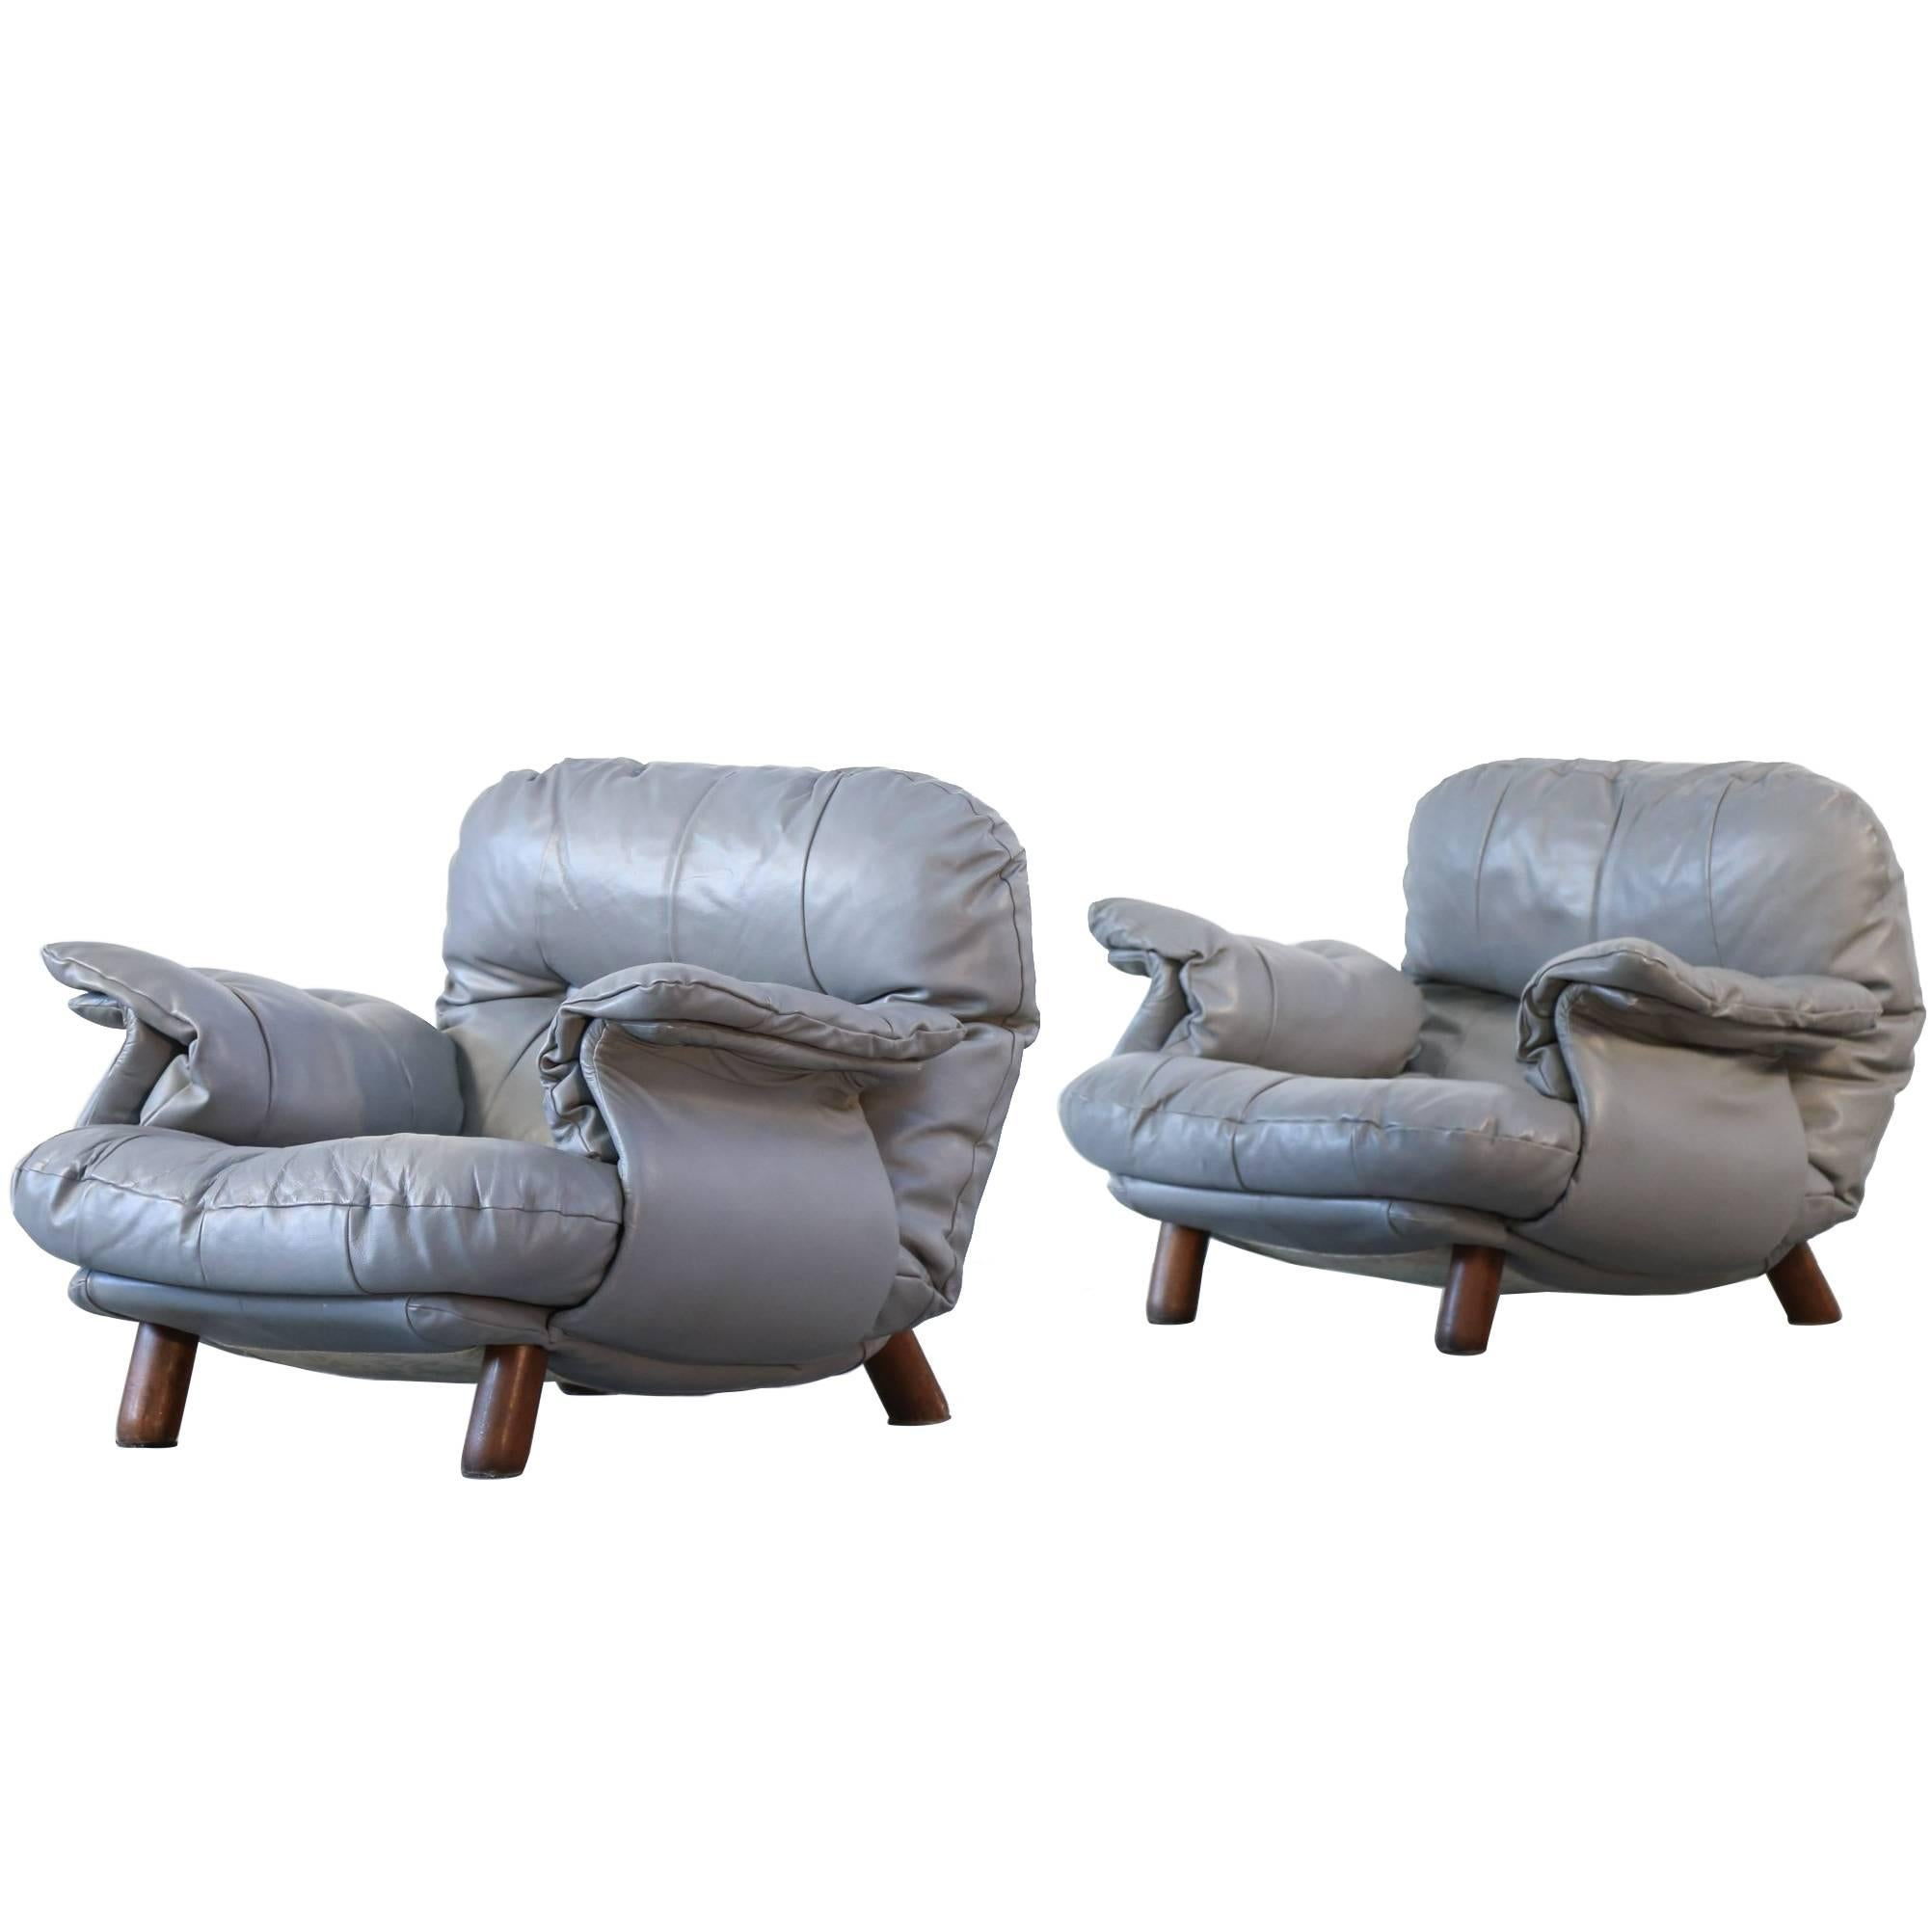 Pair of Lounge Chairs by E. Cobianchi, Italian Design